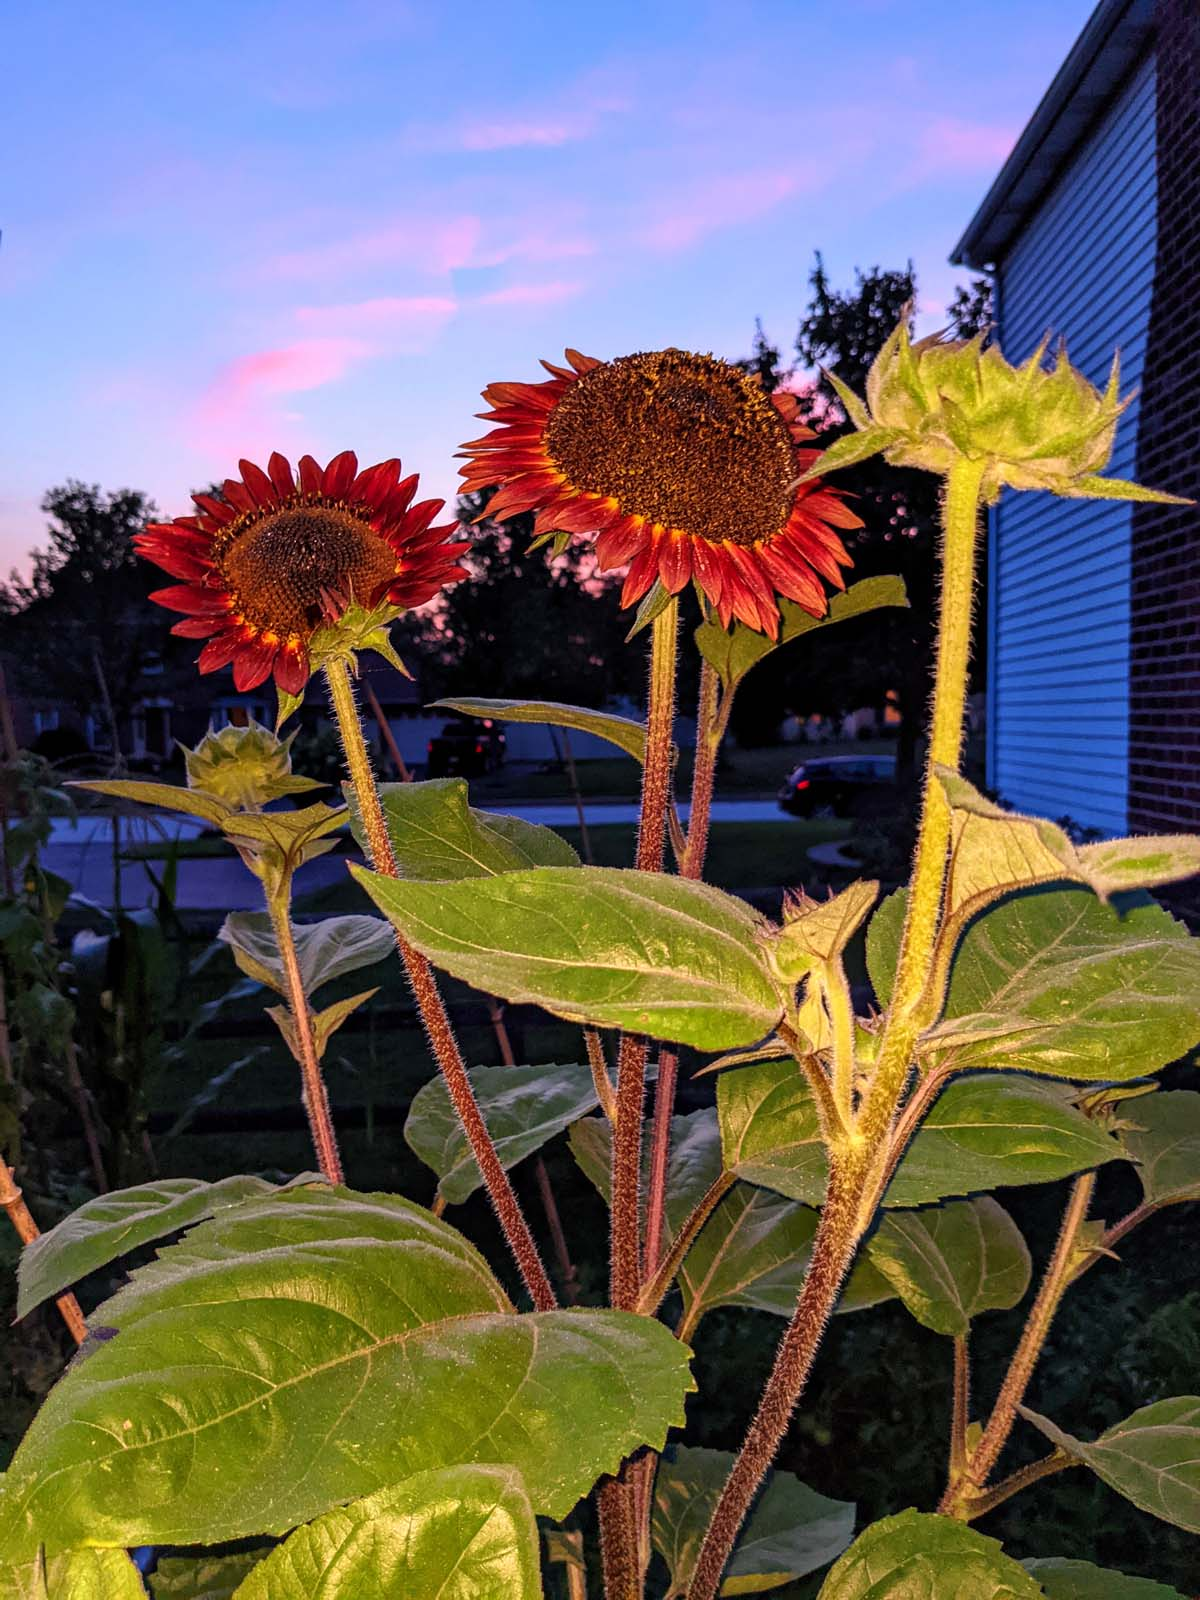 Growing Red Sunflowers - Sunset background with pink and blue sky